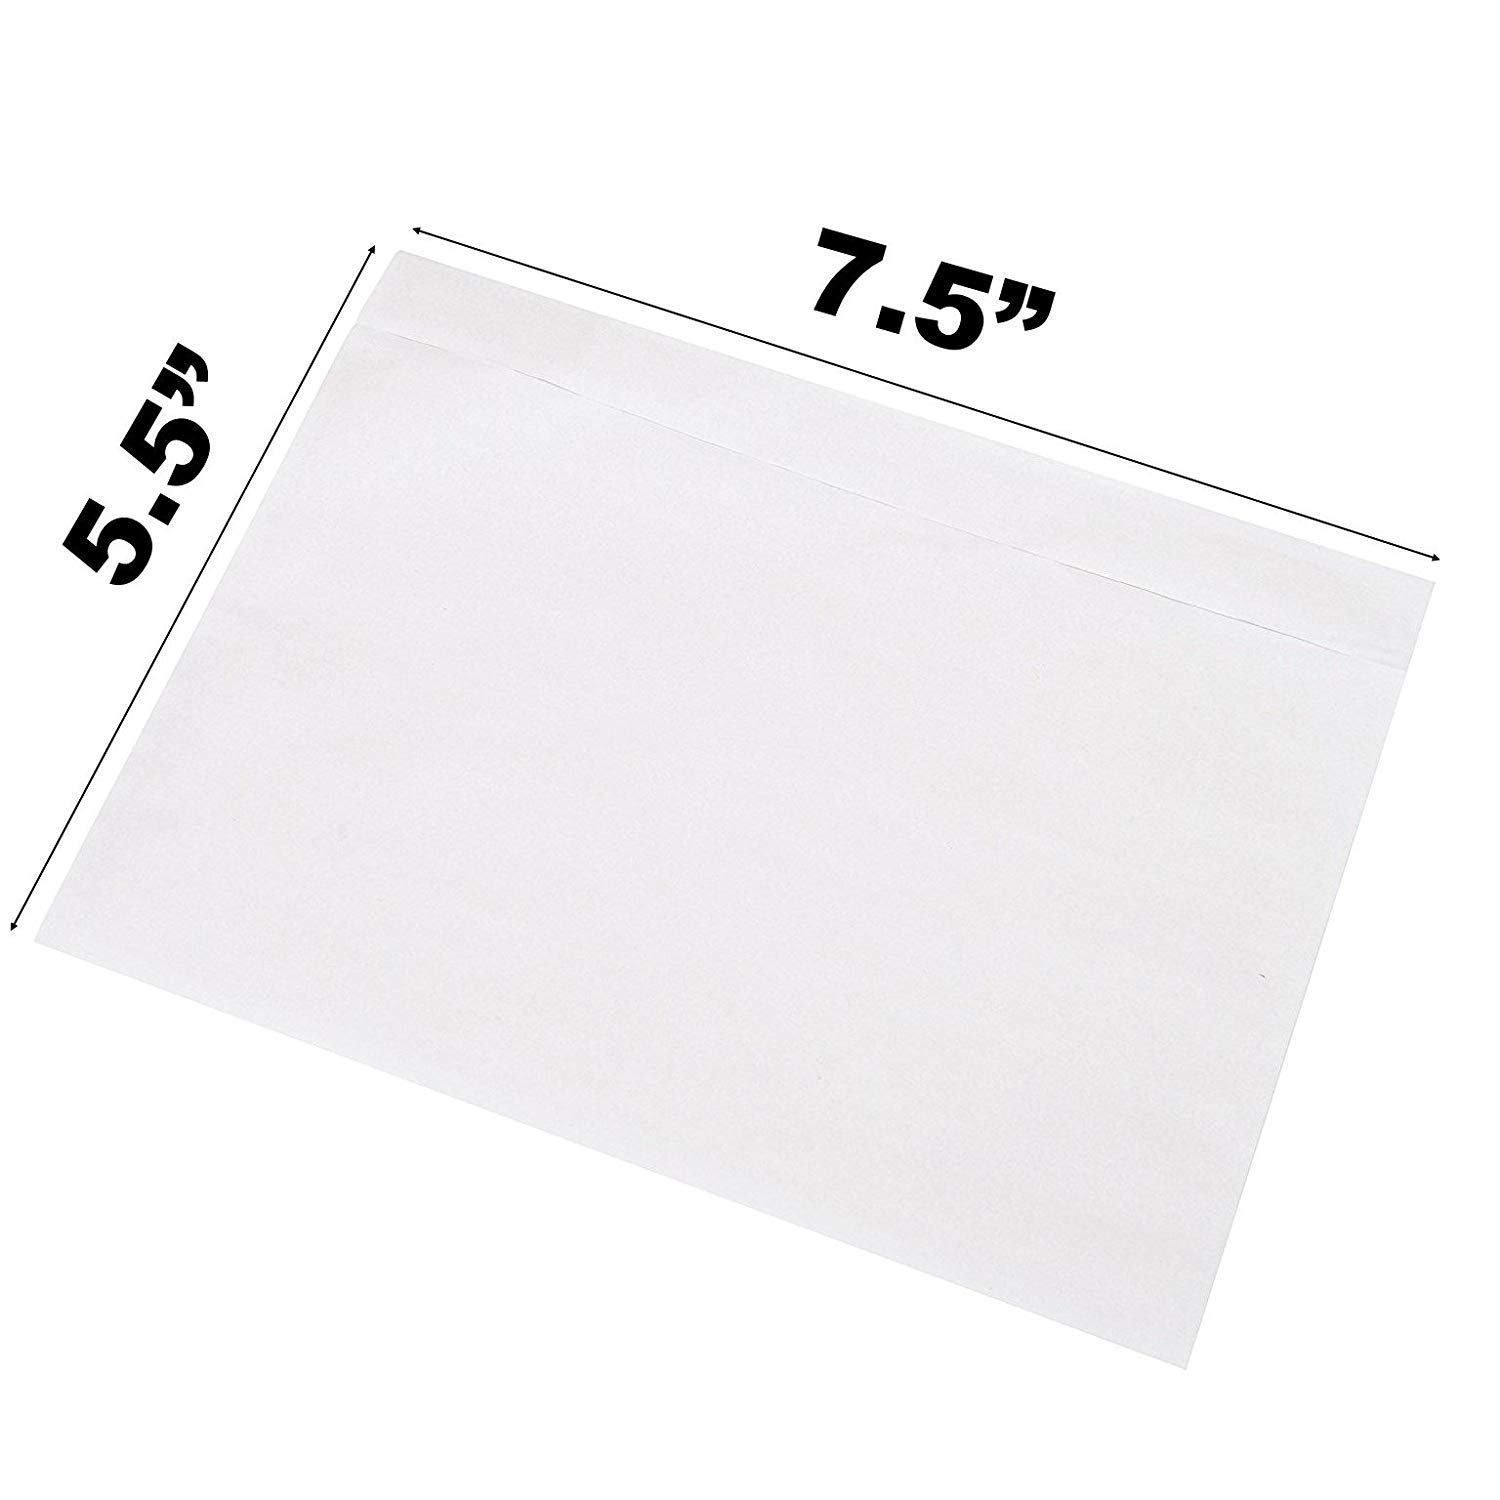 Sales4Less Packing List Envelopes 7.5'' X 5.5'' Pouches Clear Enclosed Adhesive Bags Pack of 1000 by SALES4LESS